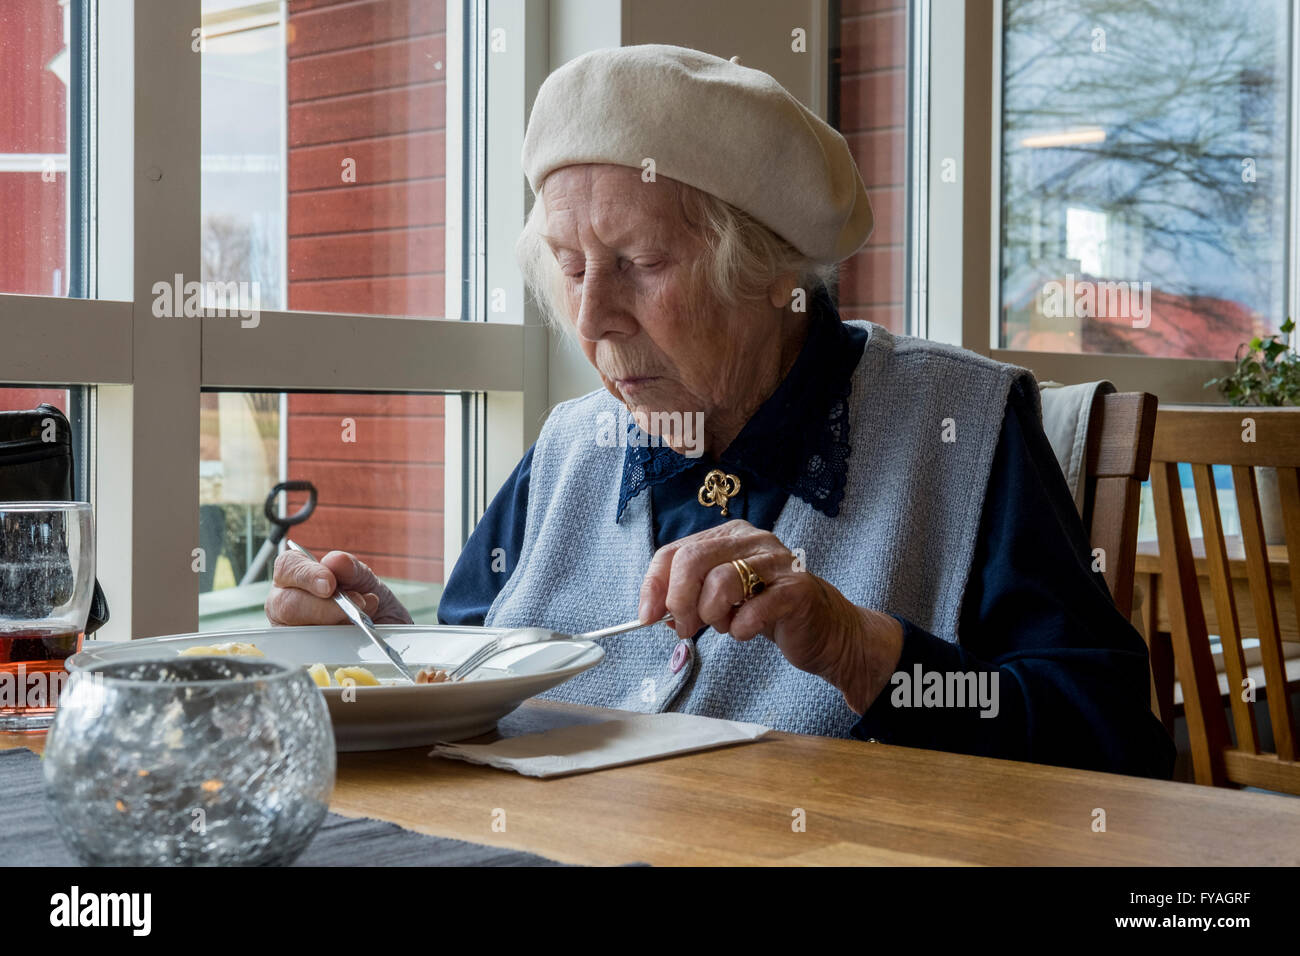 Elderly woman eating lunch. - Stock Image